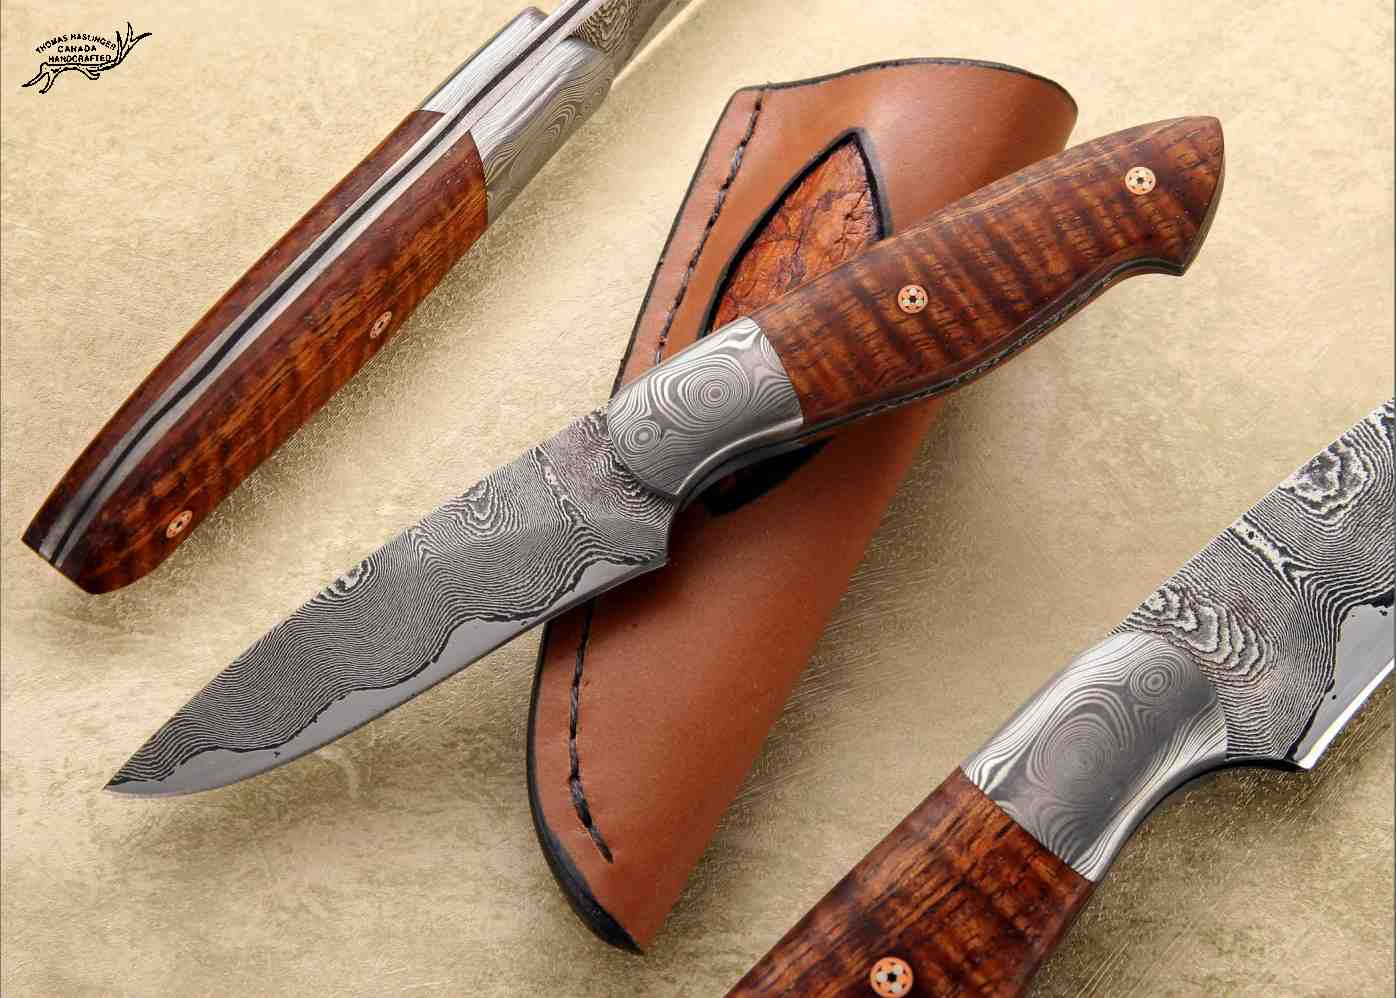 Kernmanteli Bird and Trout Knife with curly koa